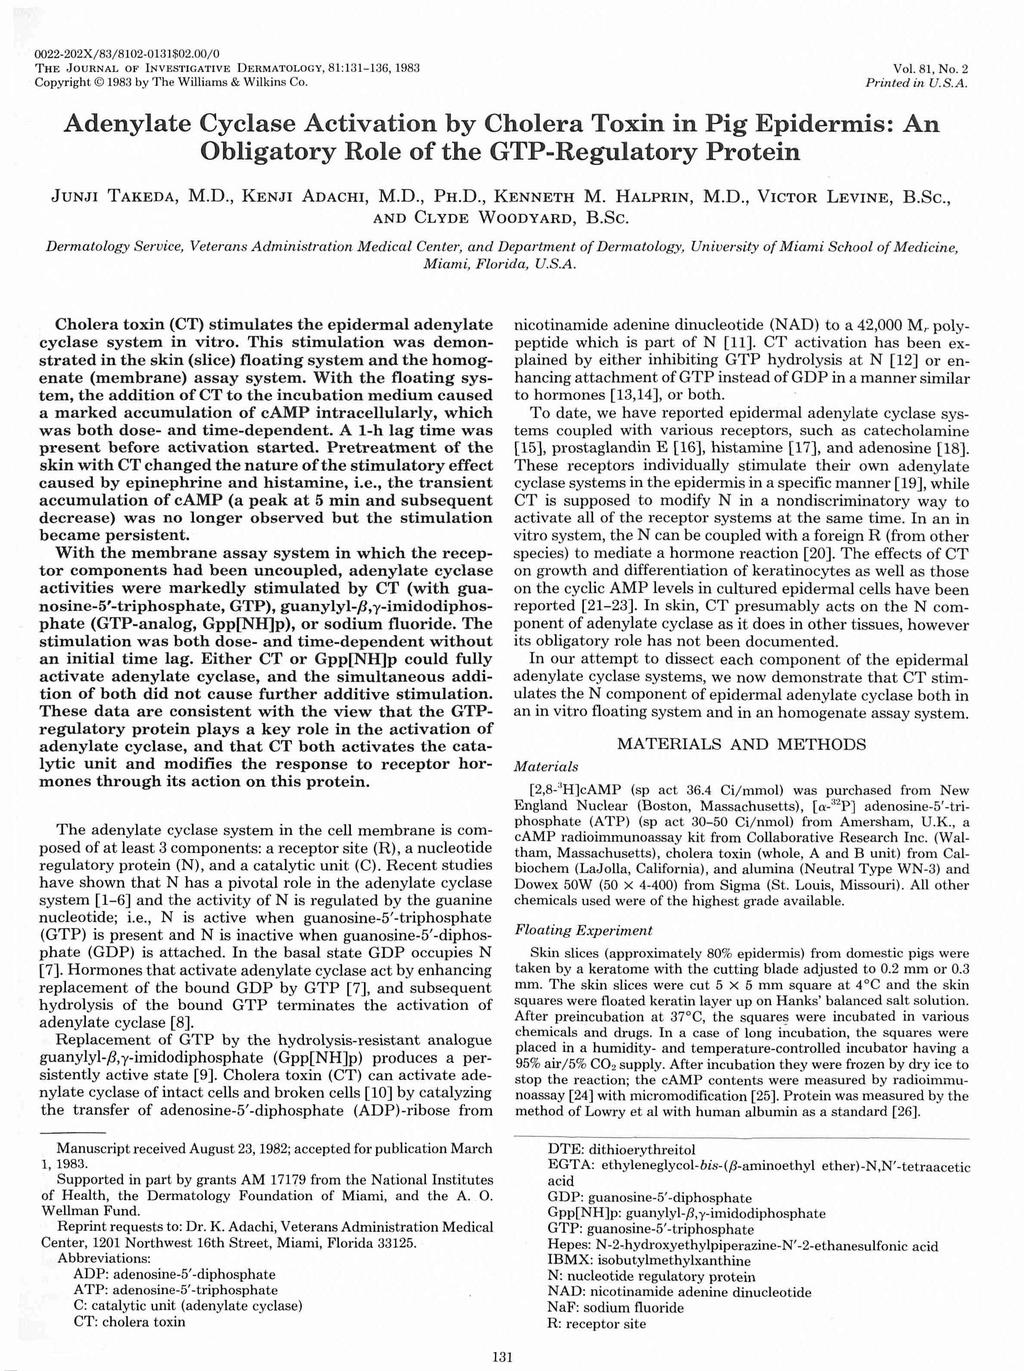 22-22X/83/812-131$2./ TH JOURNAL OF INVSTIGATIV DRMATOLOGY, 81: 131-136, 1983 Copyright 1983 by The Williams & Wilkins Co. Vol. 81, No. 2 Pn:nted in U.S.A. Adenylate Cylase Ativation by Cholera Toxin in Pig pidermis: An Obligatory Role of the GTP-Regulatory Protein JuNJI TAKDA, M.